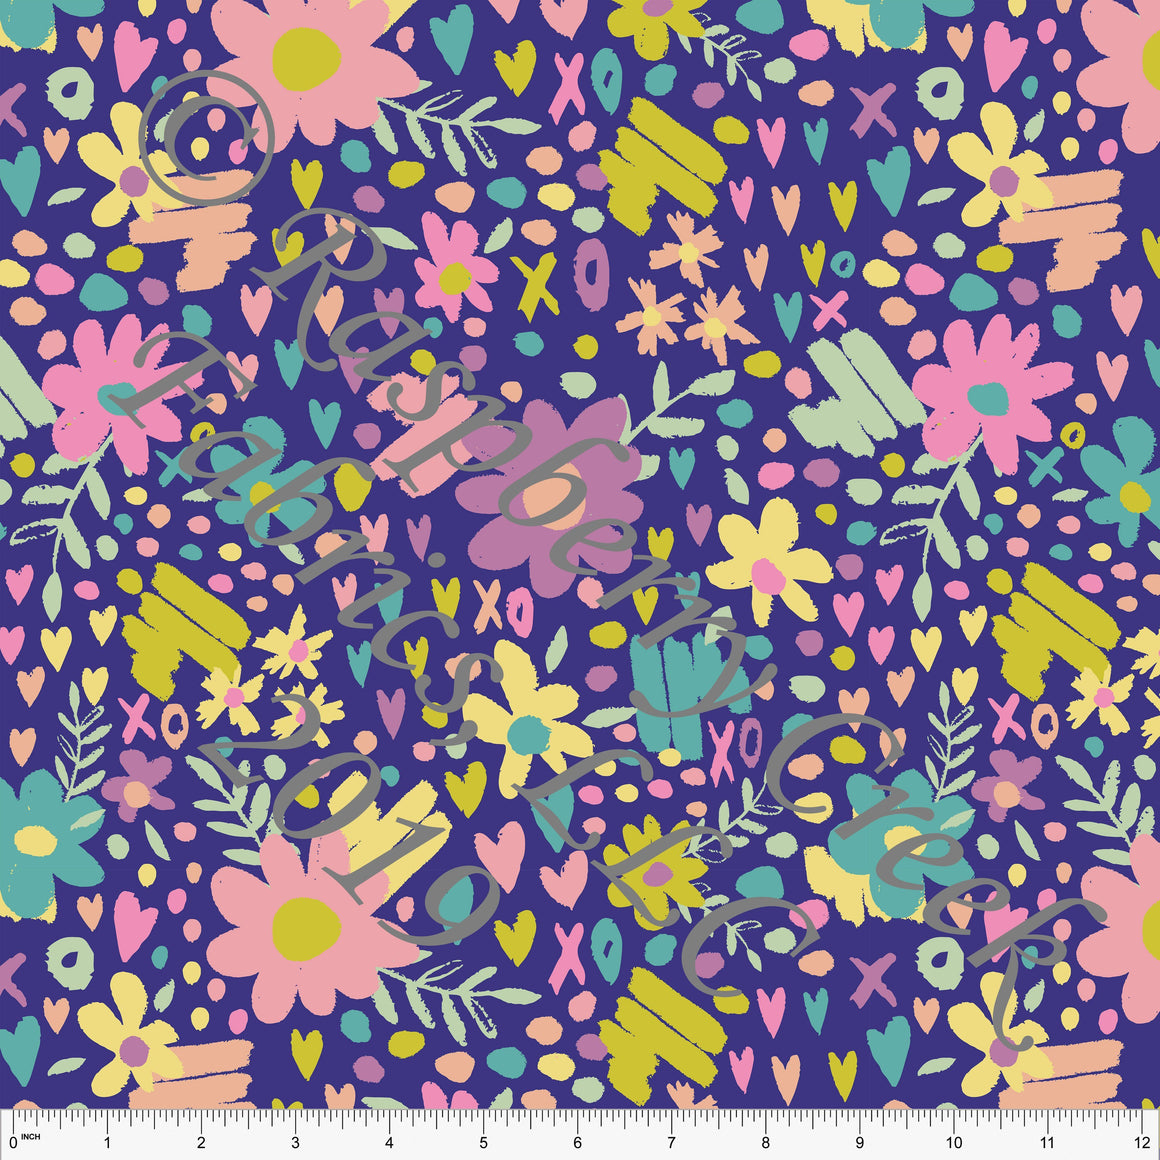 Purple Seafoam Peach Sage and Salmon Butterfly Kisses Heart Floral 4 Way Stretch Double Brushed Poly, By Kimberly Henrie for CLUB Fabrics - Raspberry Creek Fabrics